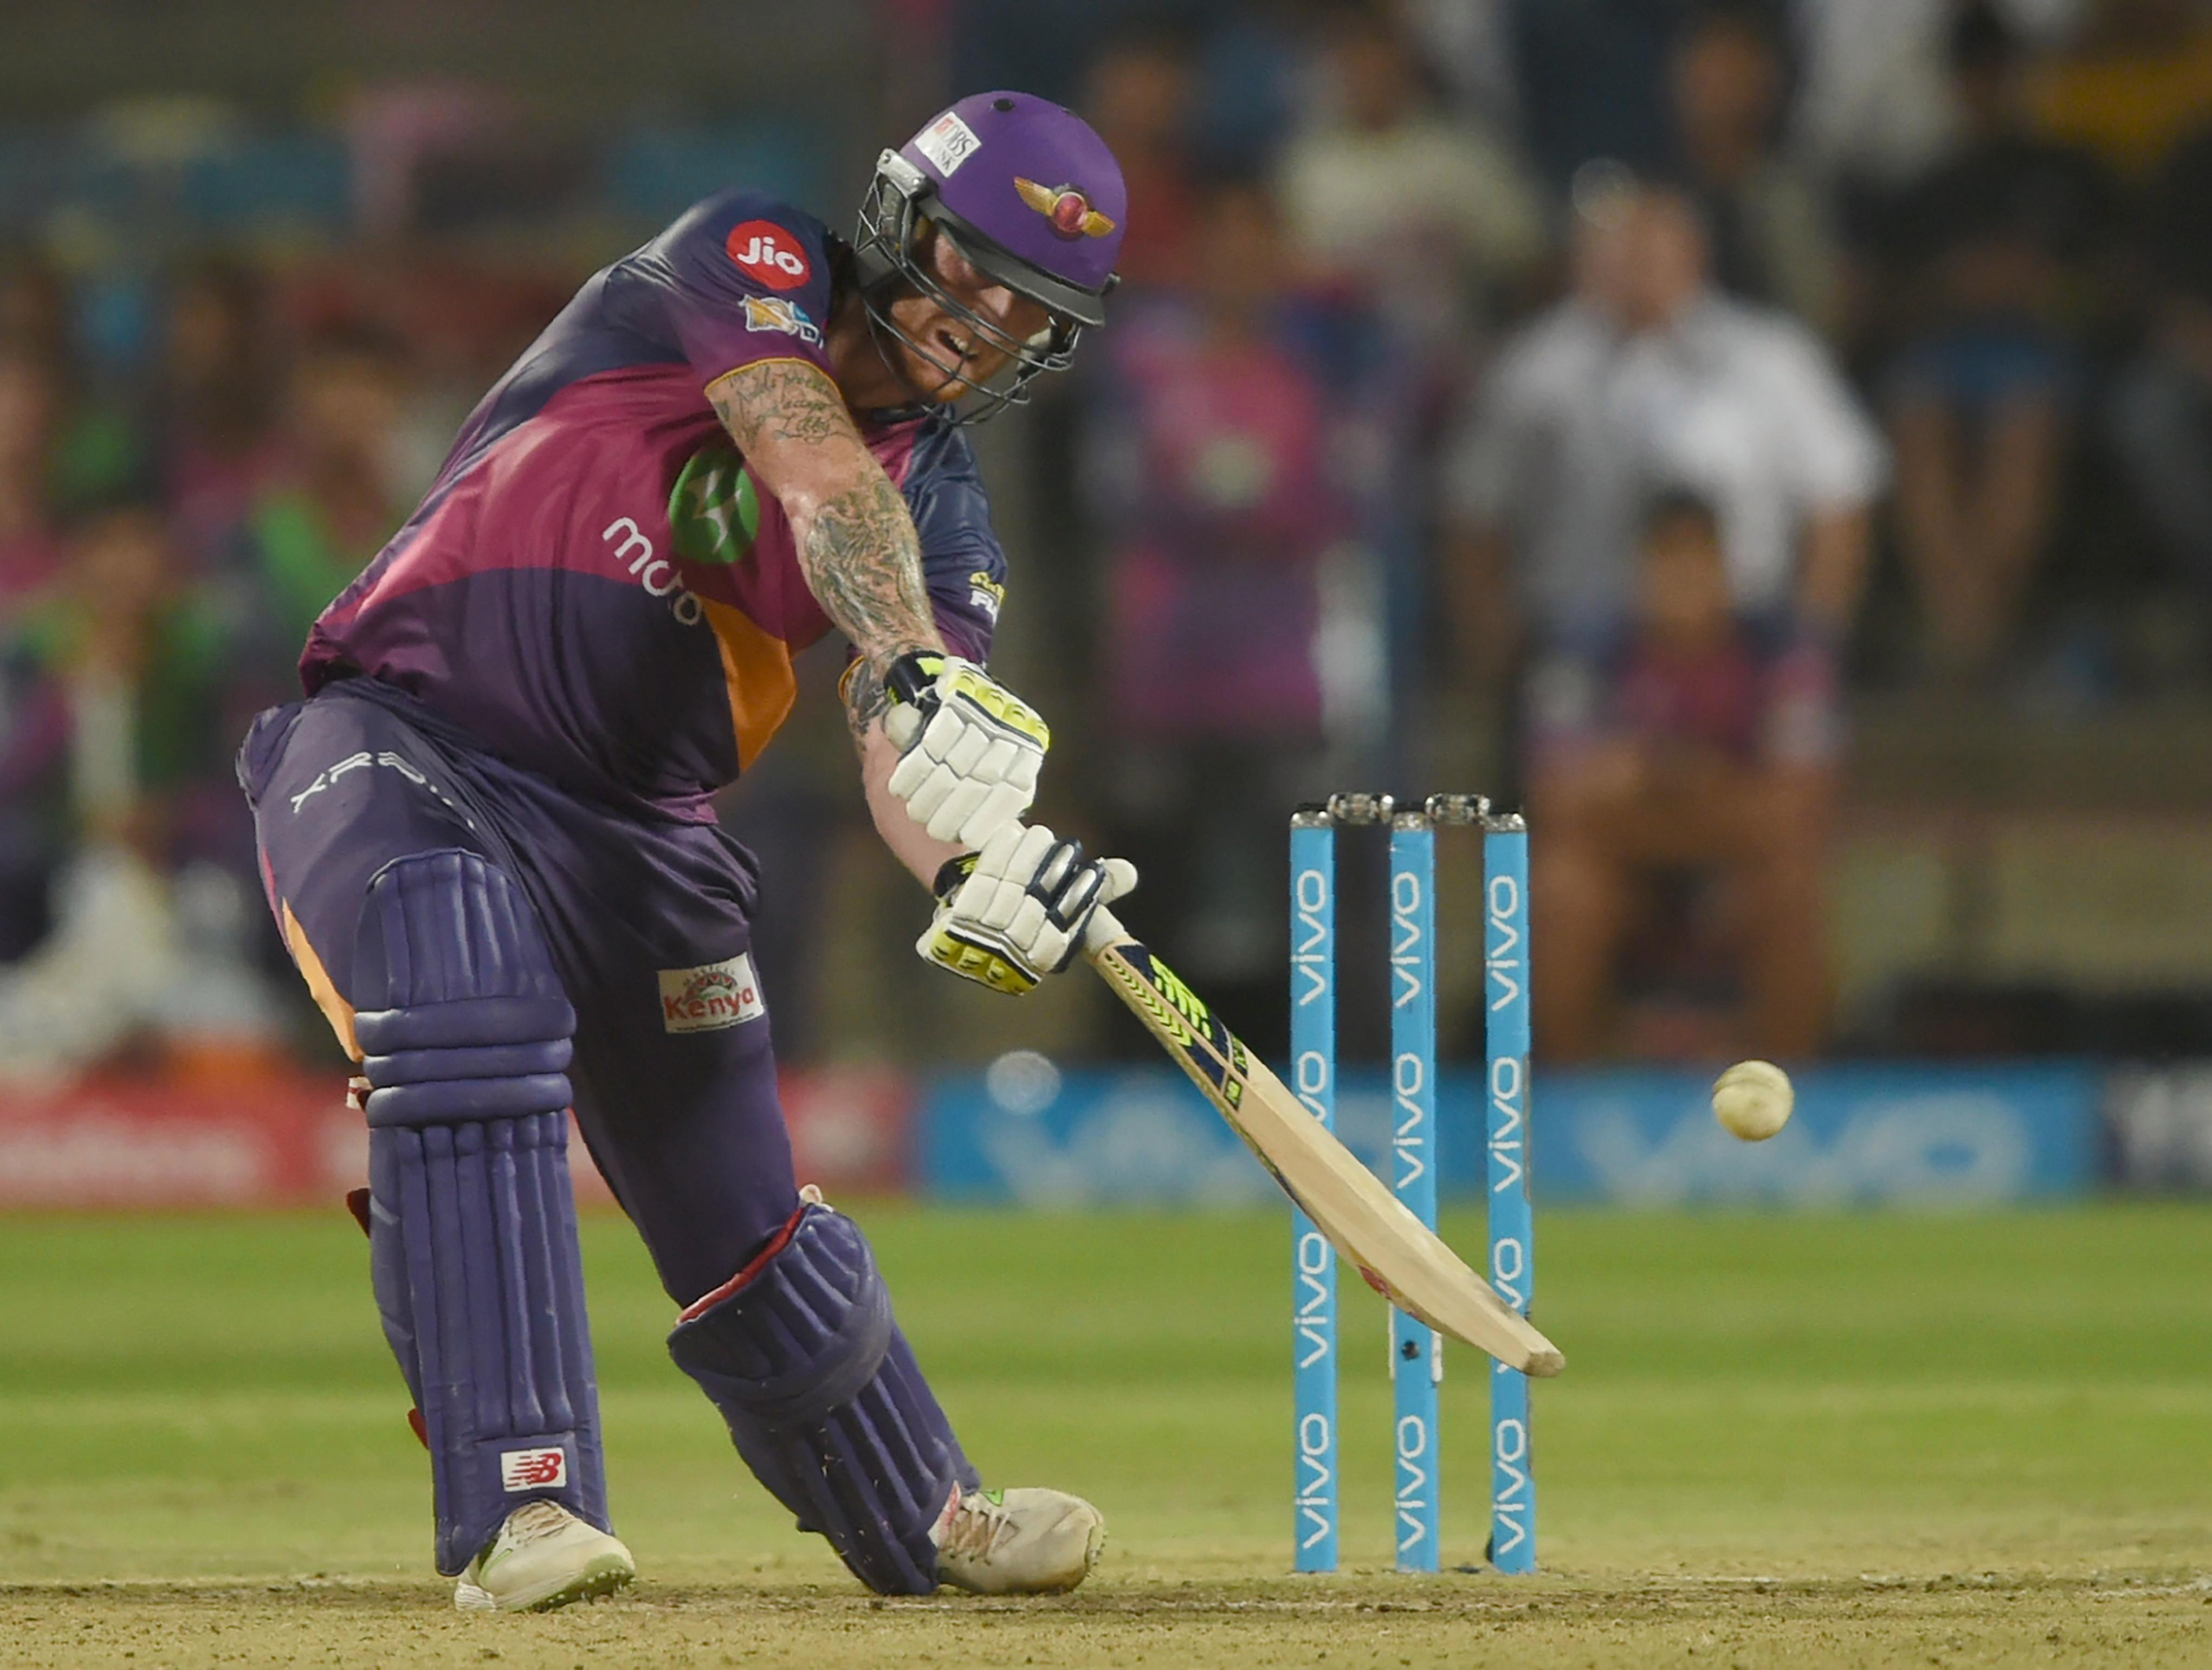 Ben Stokes cleared to play in IPL in India despite England ban